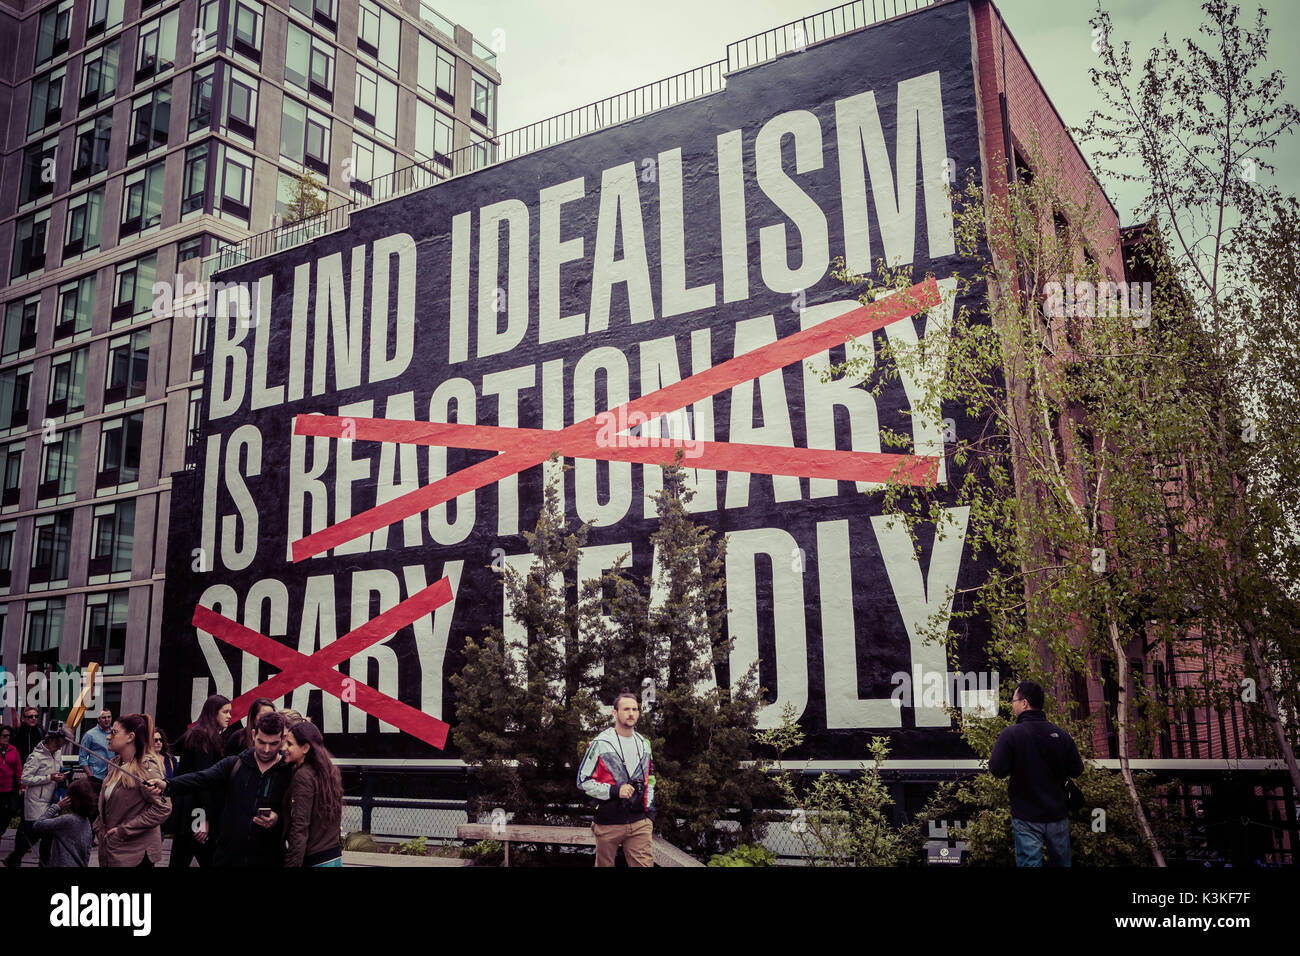 Billboard 'Blind Idealism is reactionary scary deadly', The High Line is a public park built on a historic freight rail line elevated above the streets on Manhattan's West Side. Chelsea, Art District, Tourist Attraction and Life Line of New York, Manhatten, USA - Stock Image